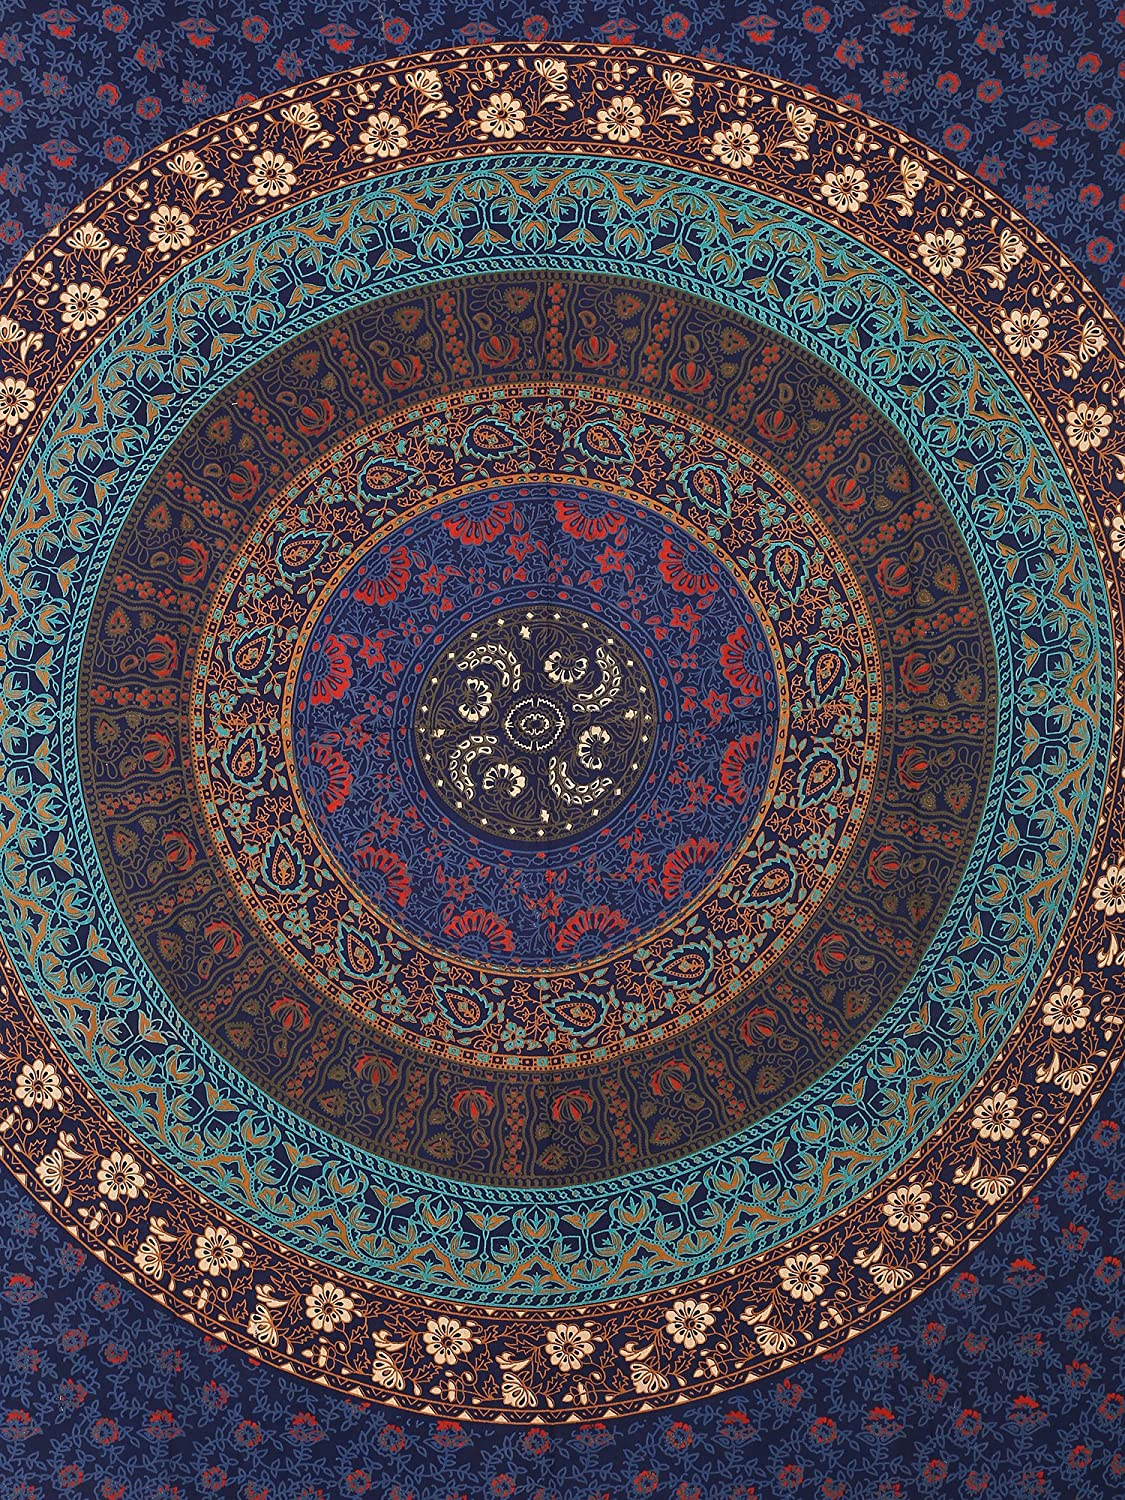 Gokul Handloom Hippy Mandala Bohemian Tapestries Indian Dorm Decor Psychedelic Multicolor Tapestry Wall Hanging Ethnic Decorative Tapestry GHT00112